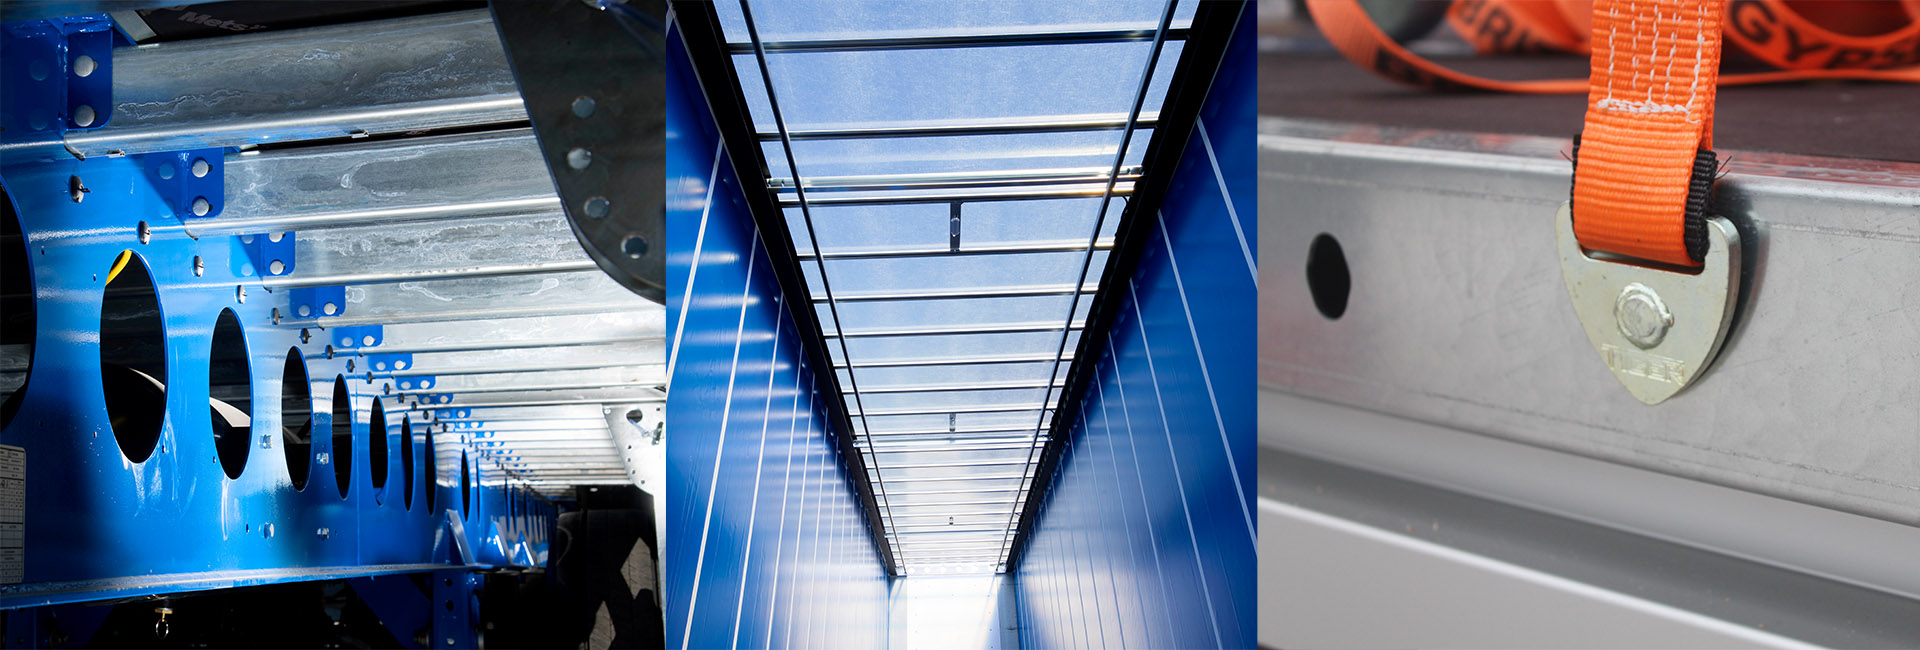 Case study - British Gypsum XPO curtainsiders - lightweight clearspan pillarless roof captive rave load securing